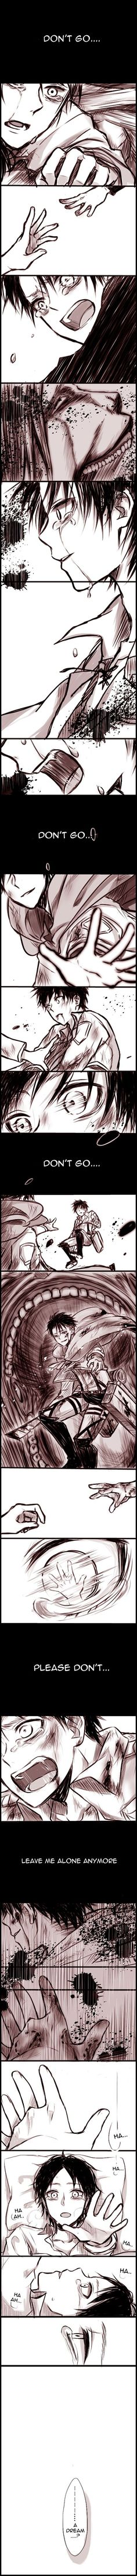 Rivaille (Levi) x Eren Jaeger  I literally cried when I saw this